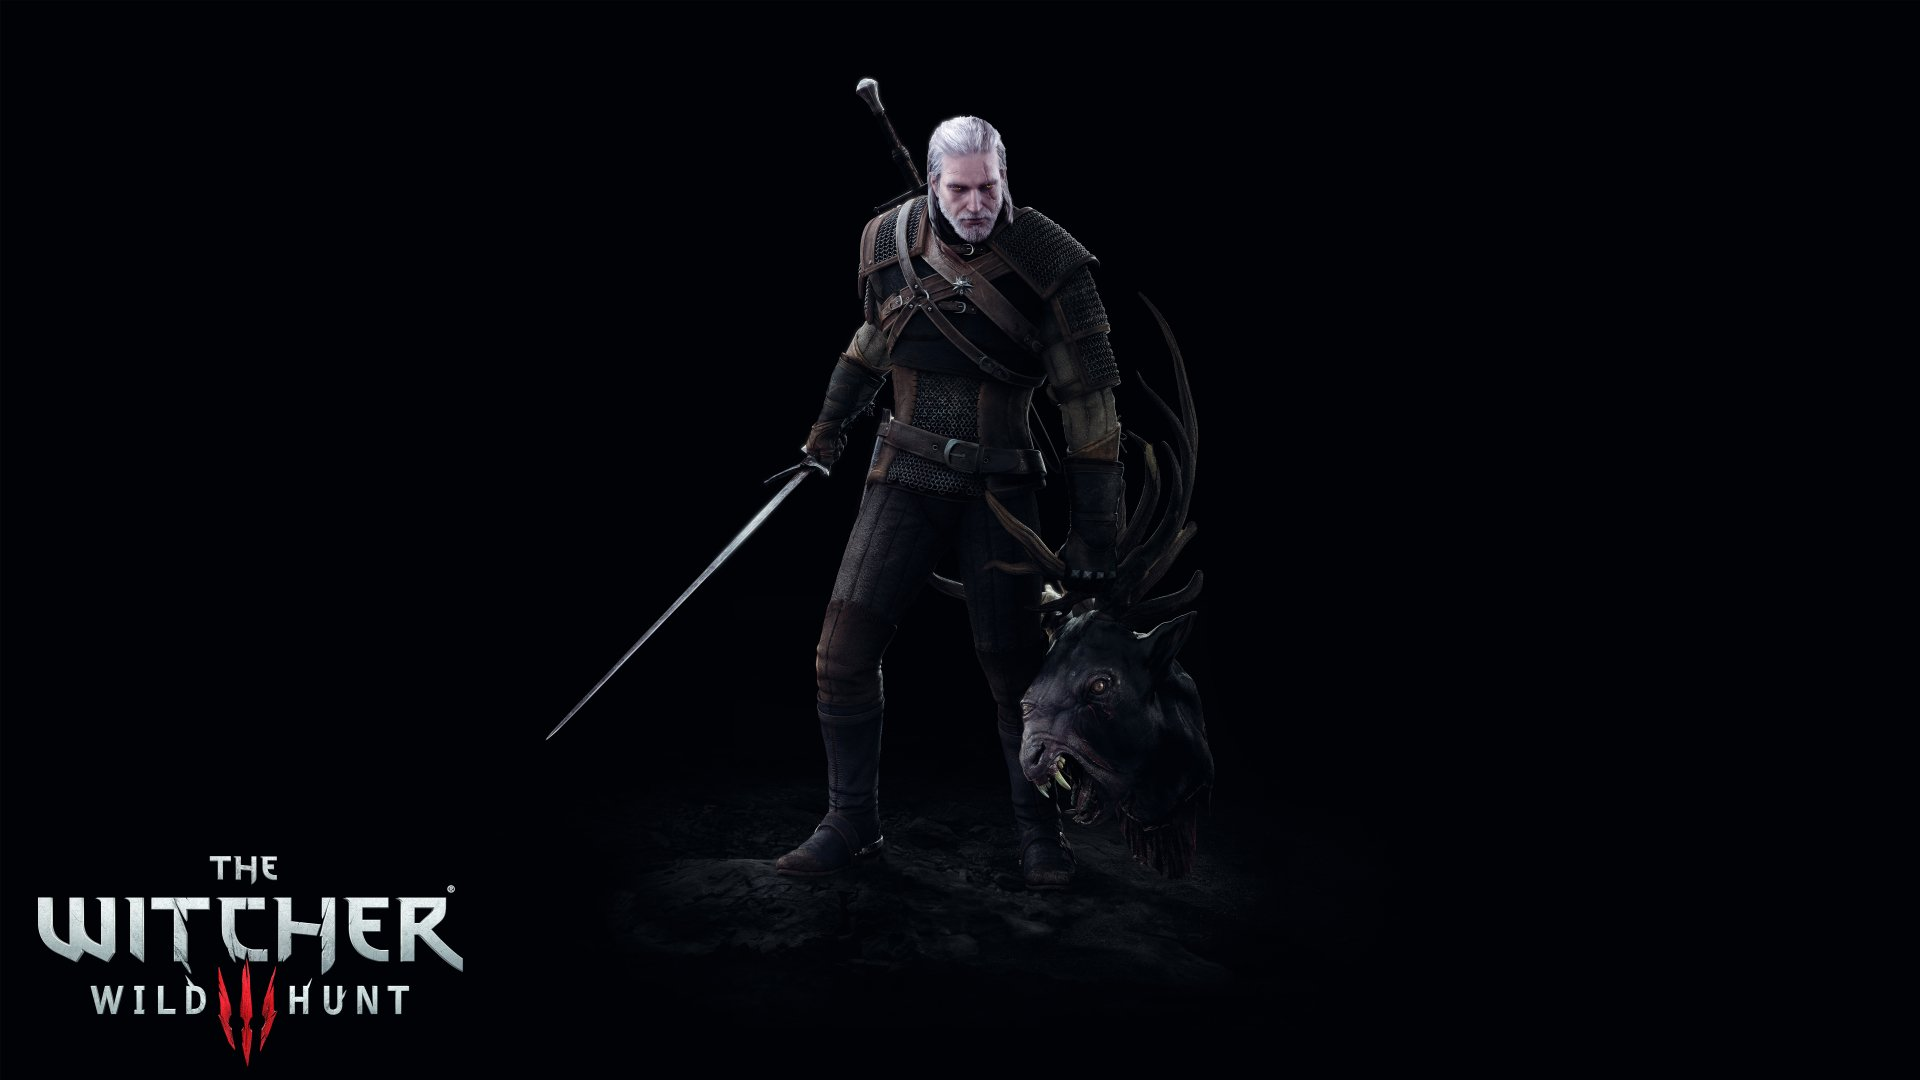 Video Game - The Witcher 3: Wild Hunt  The Witcher Geralt of Rivia Wallpaper